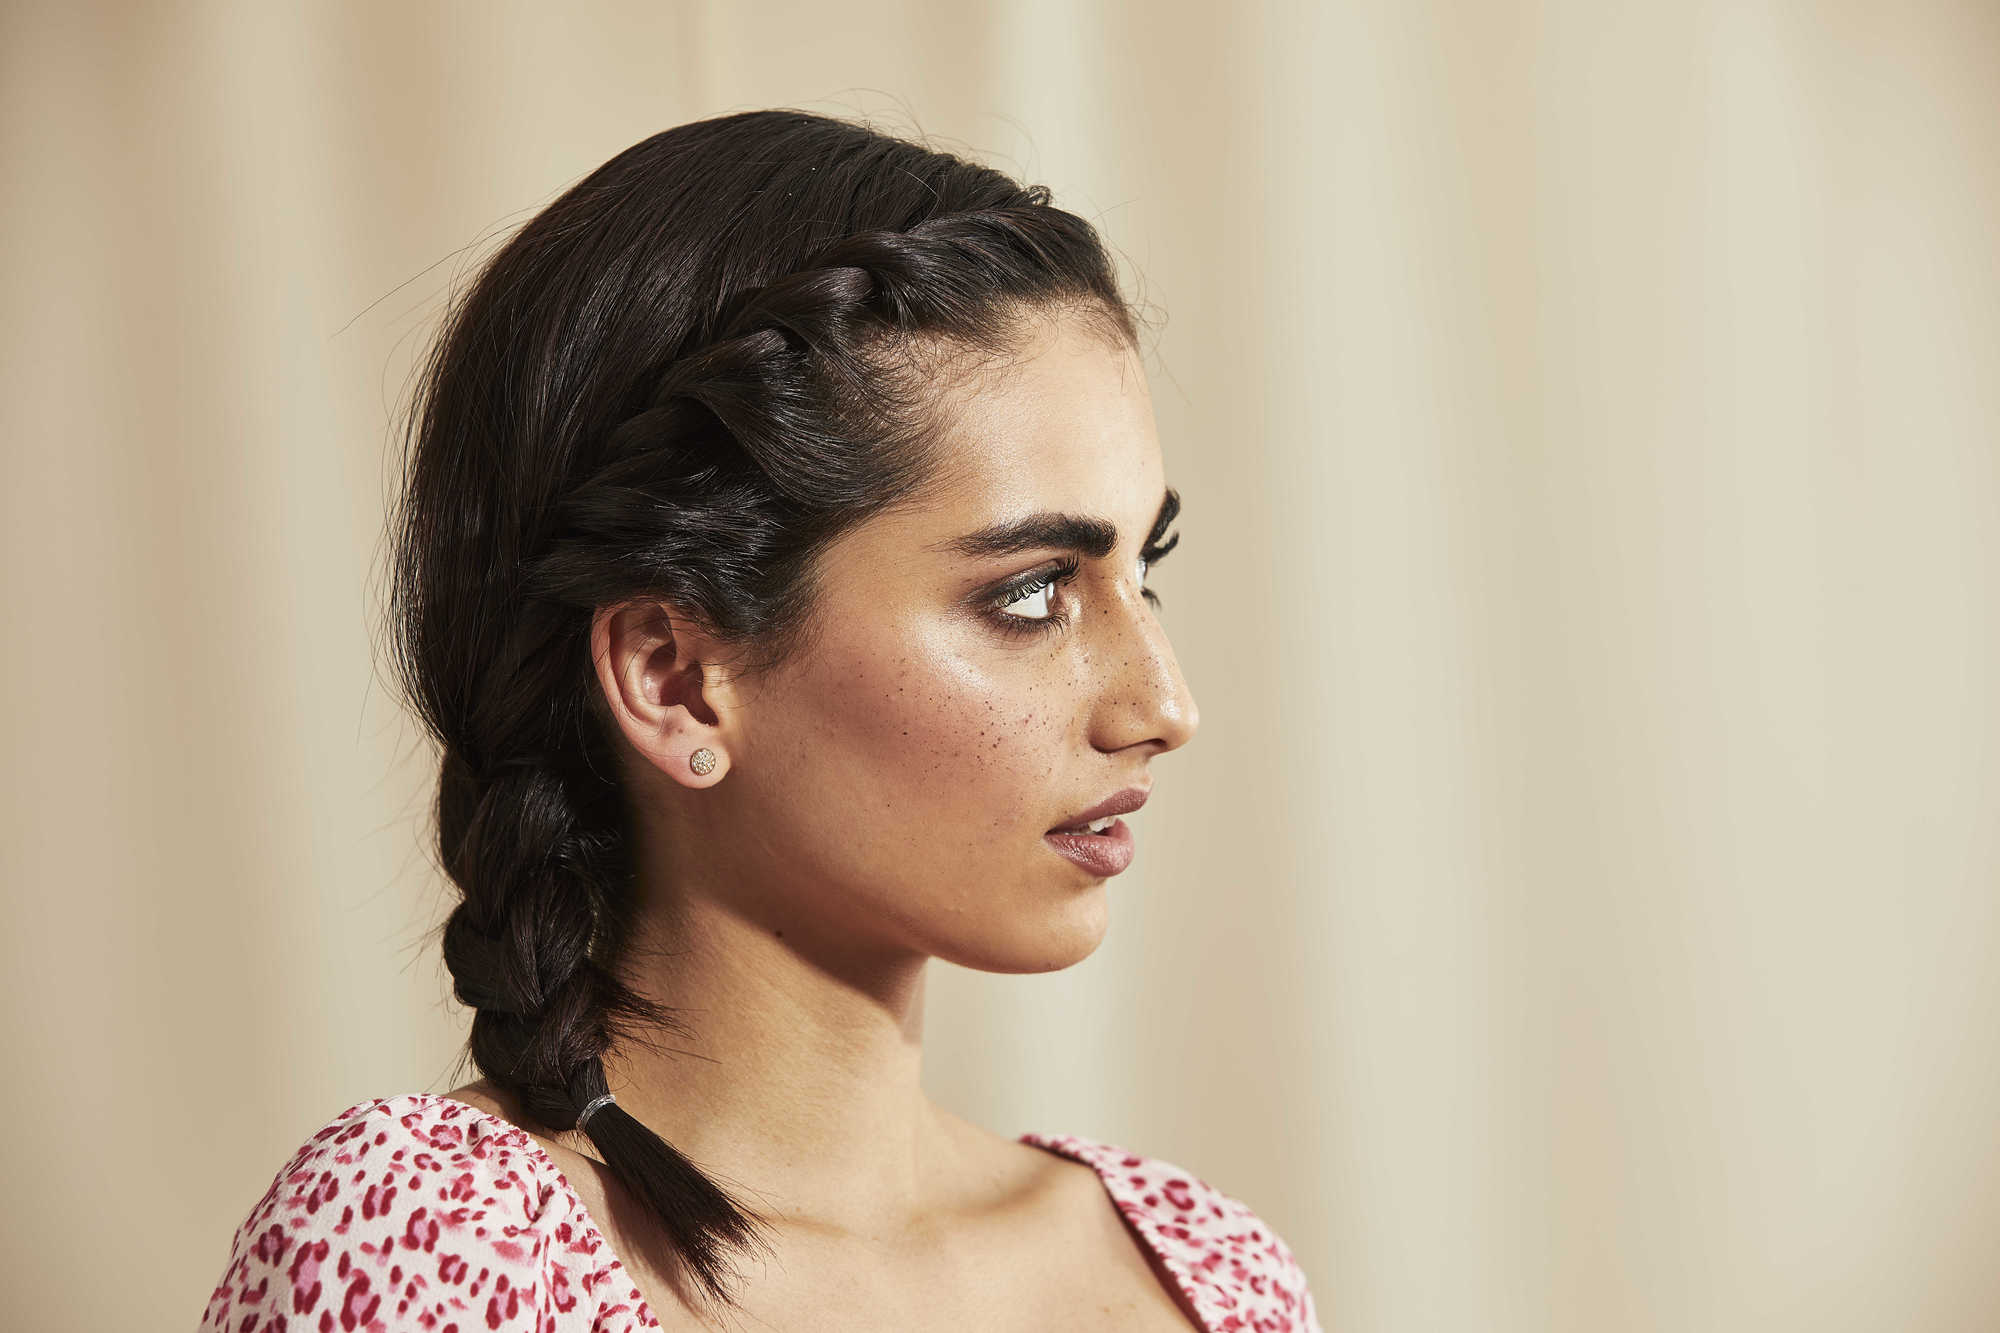 Woman with shoulder length side braid